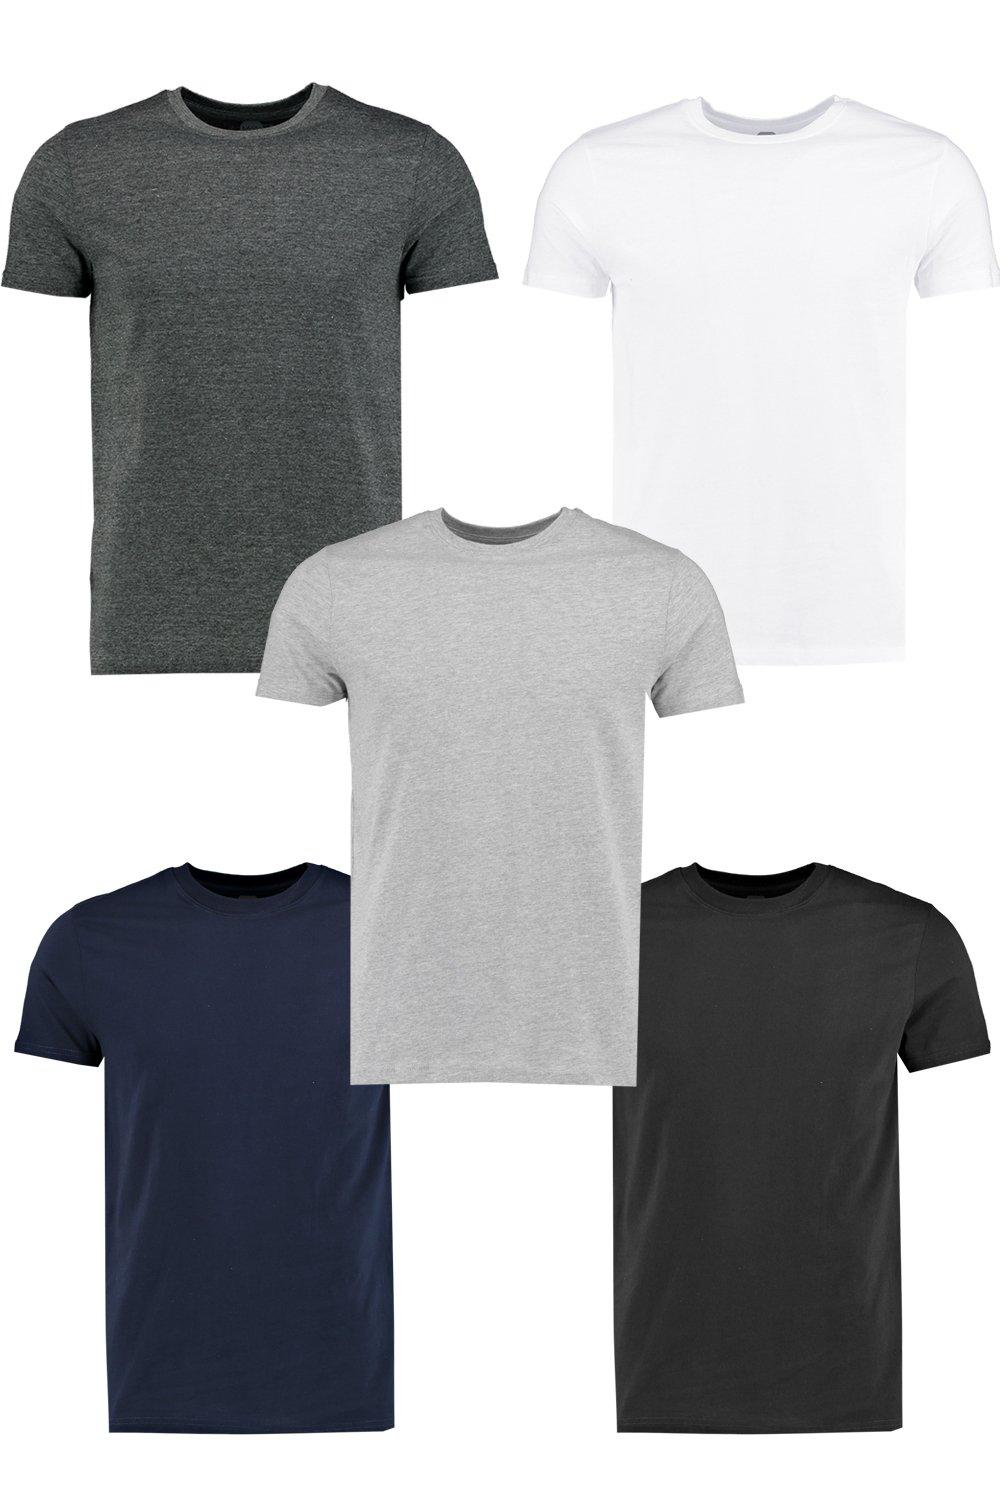 5 Pack Slim Fit T Shirts